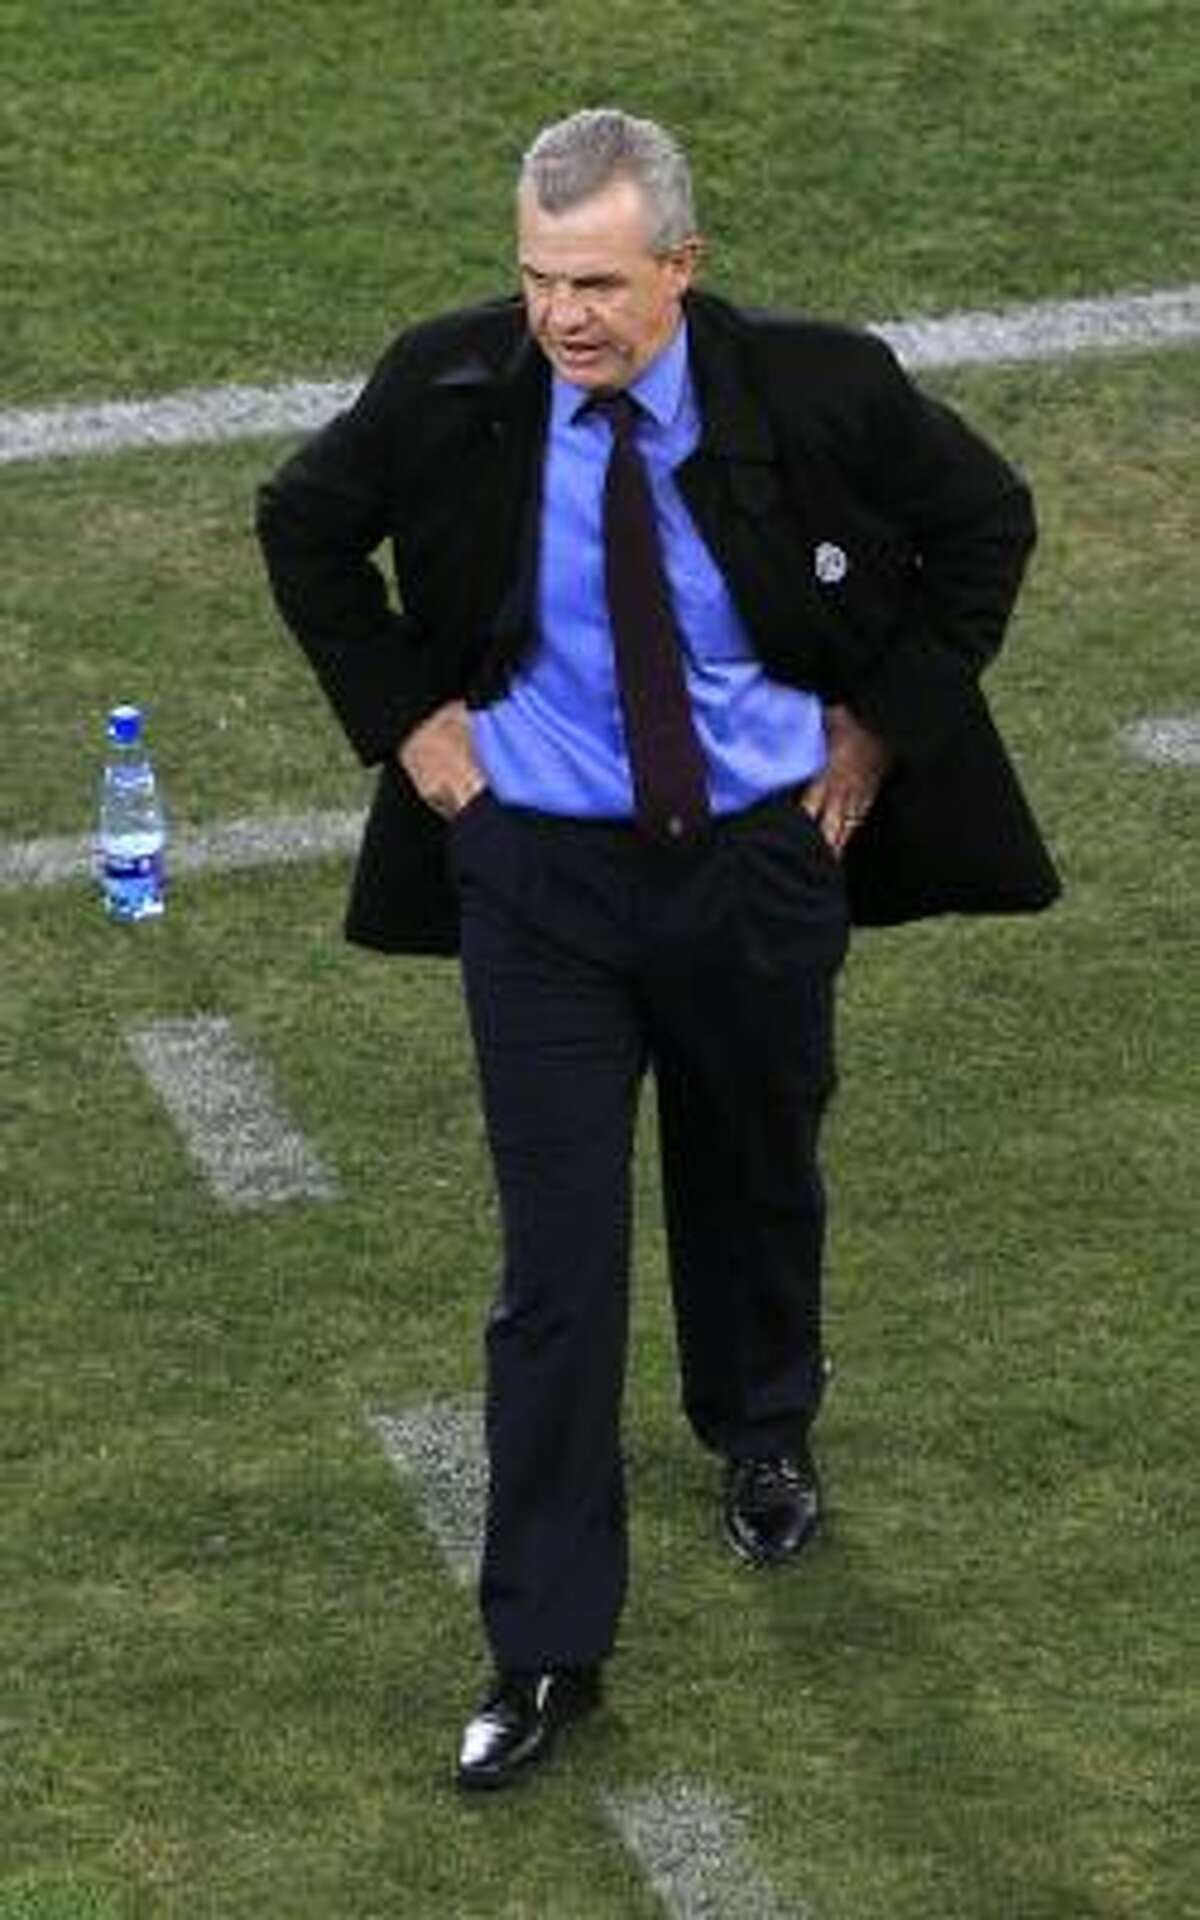 Mexico head coach Javier Aguirre paces the sidelines.